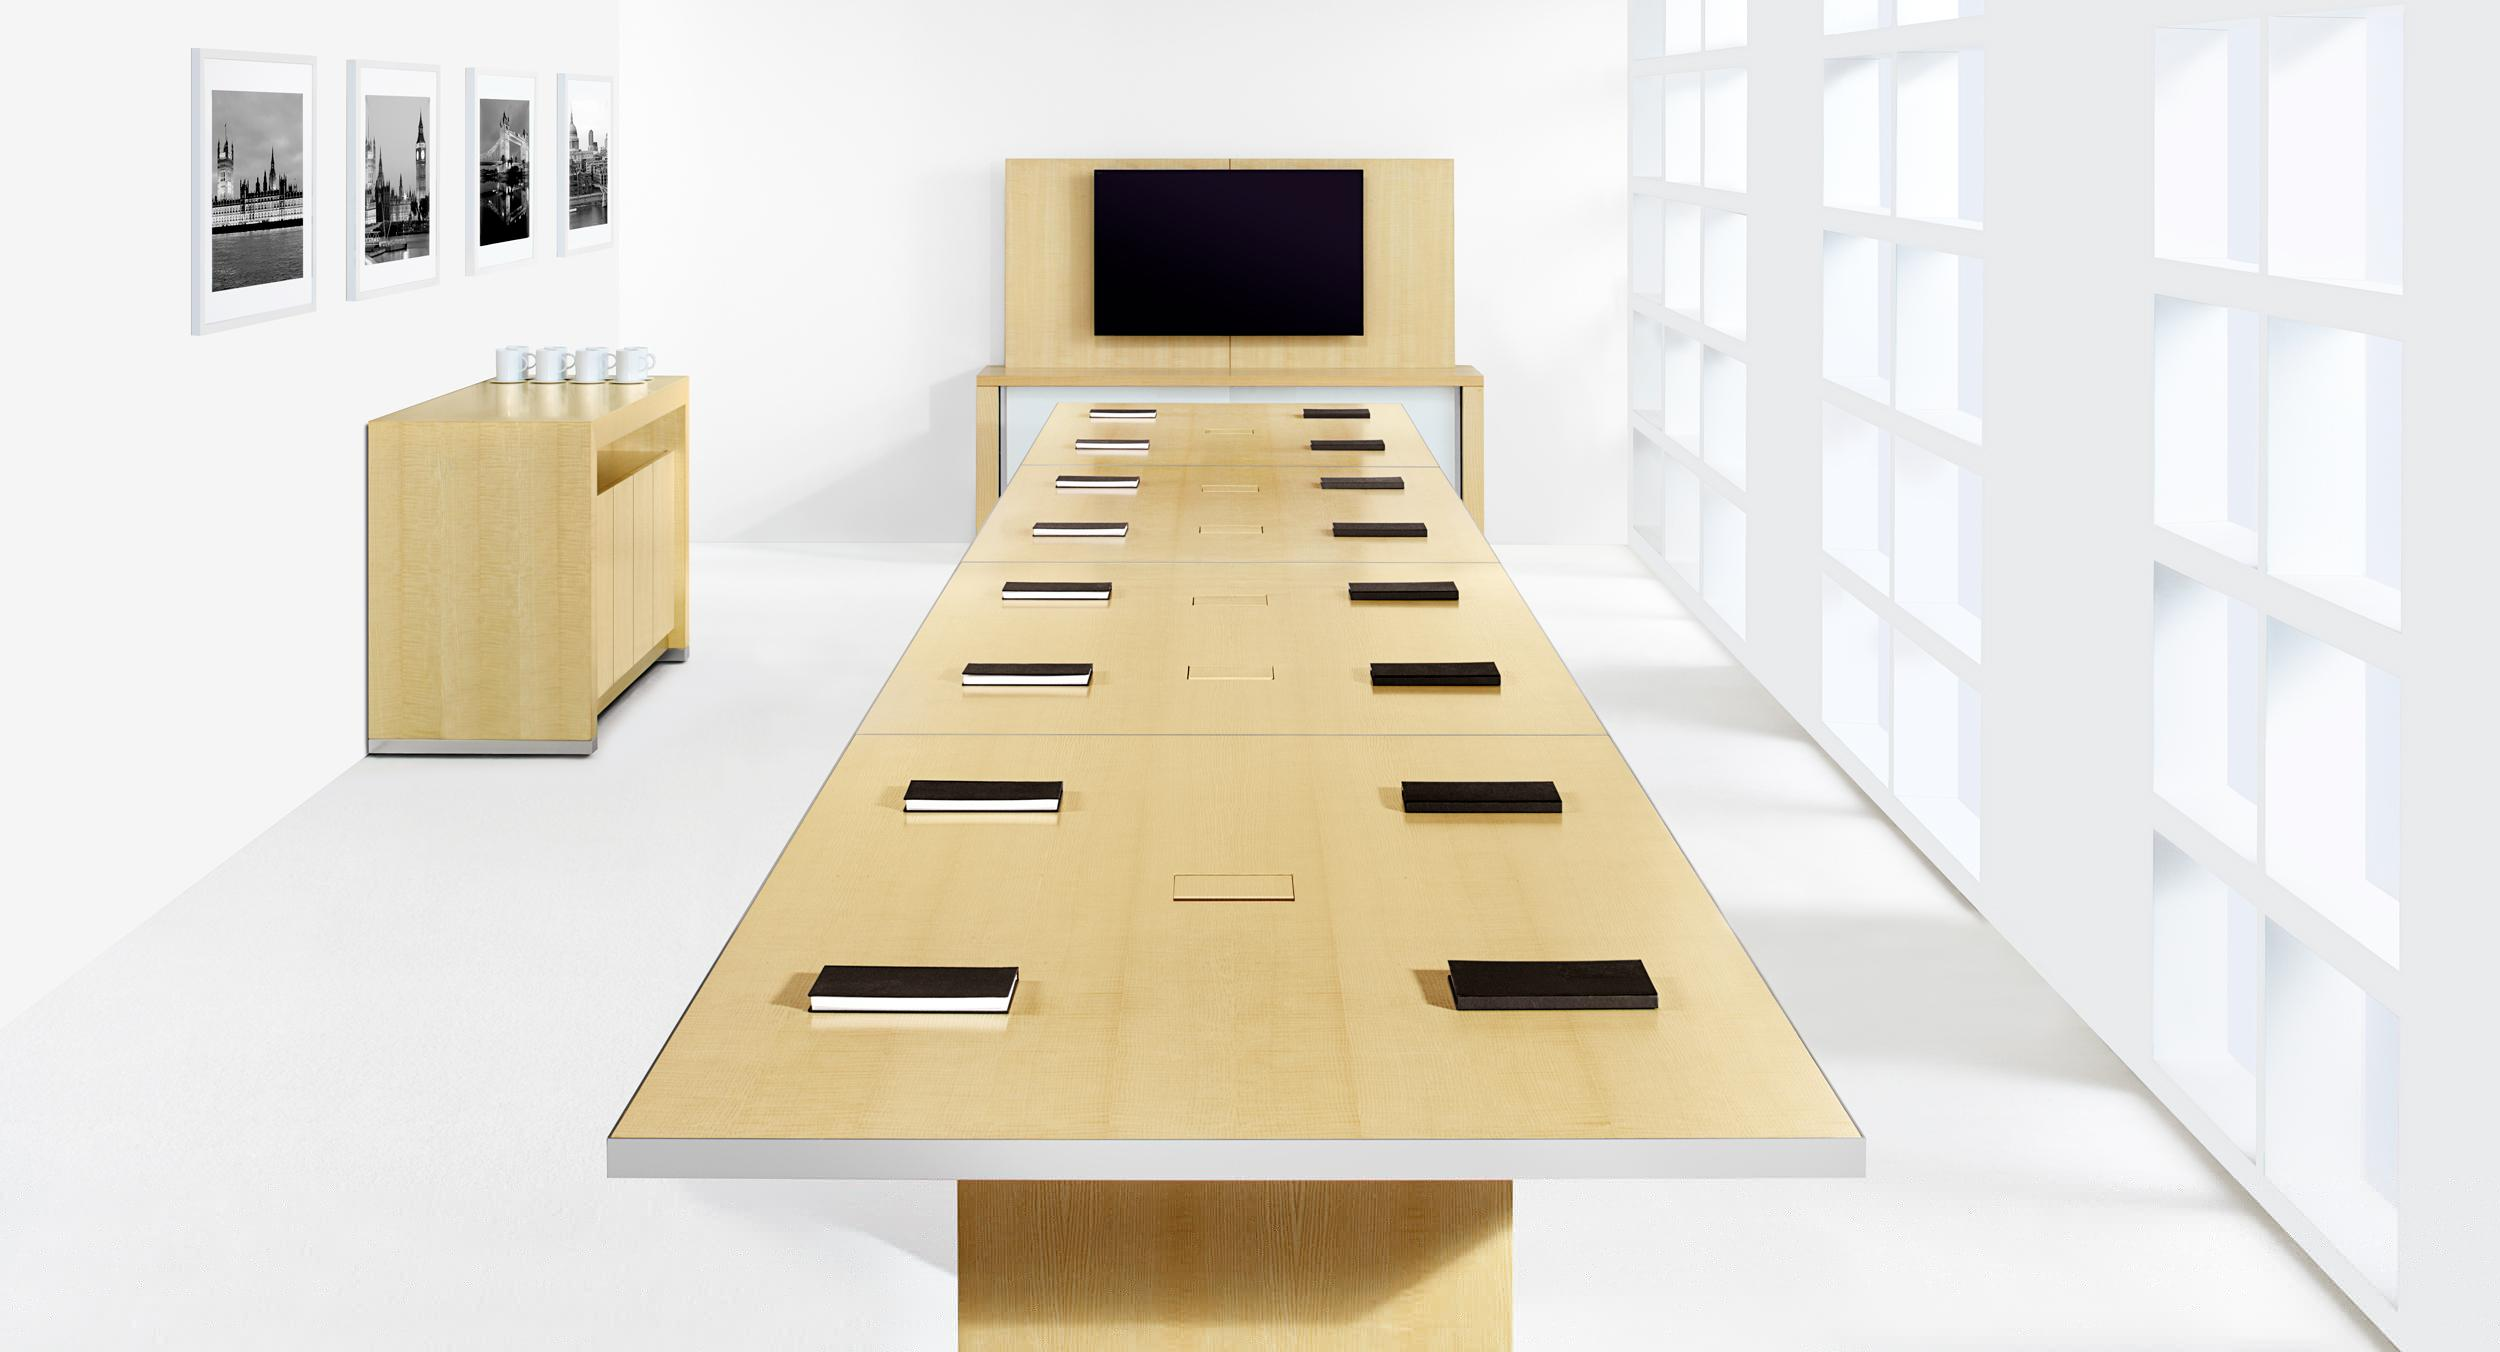 Motus pairs uncompromised aesthetics with an innovative and intuitive interface to redefine reconfigurable tables.